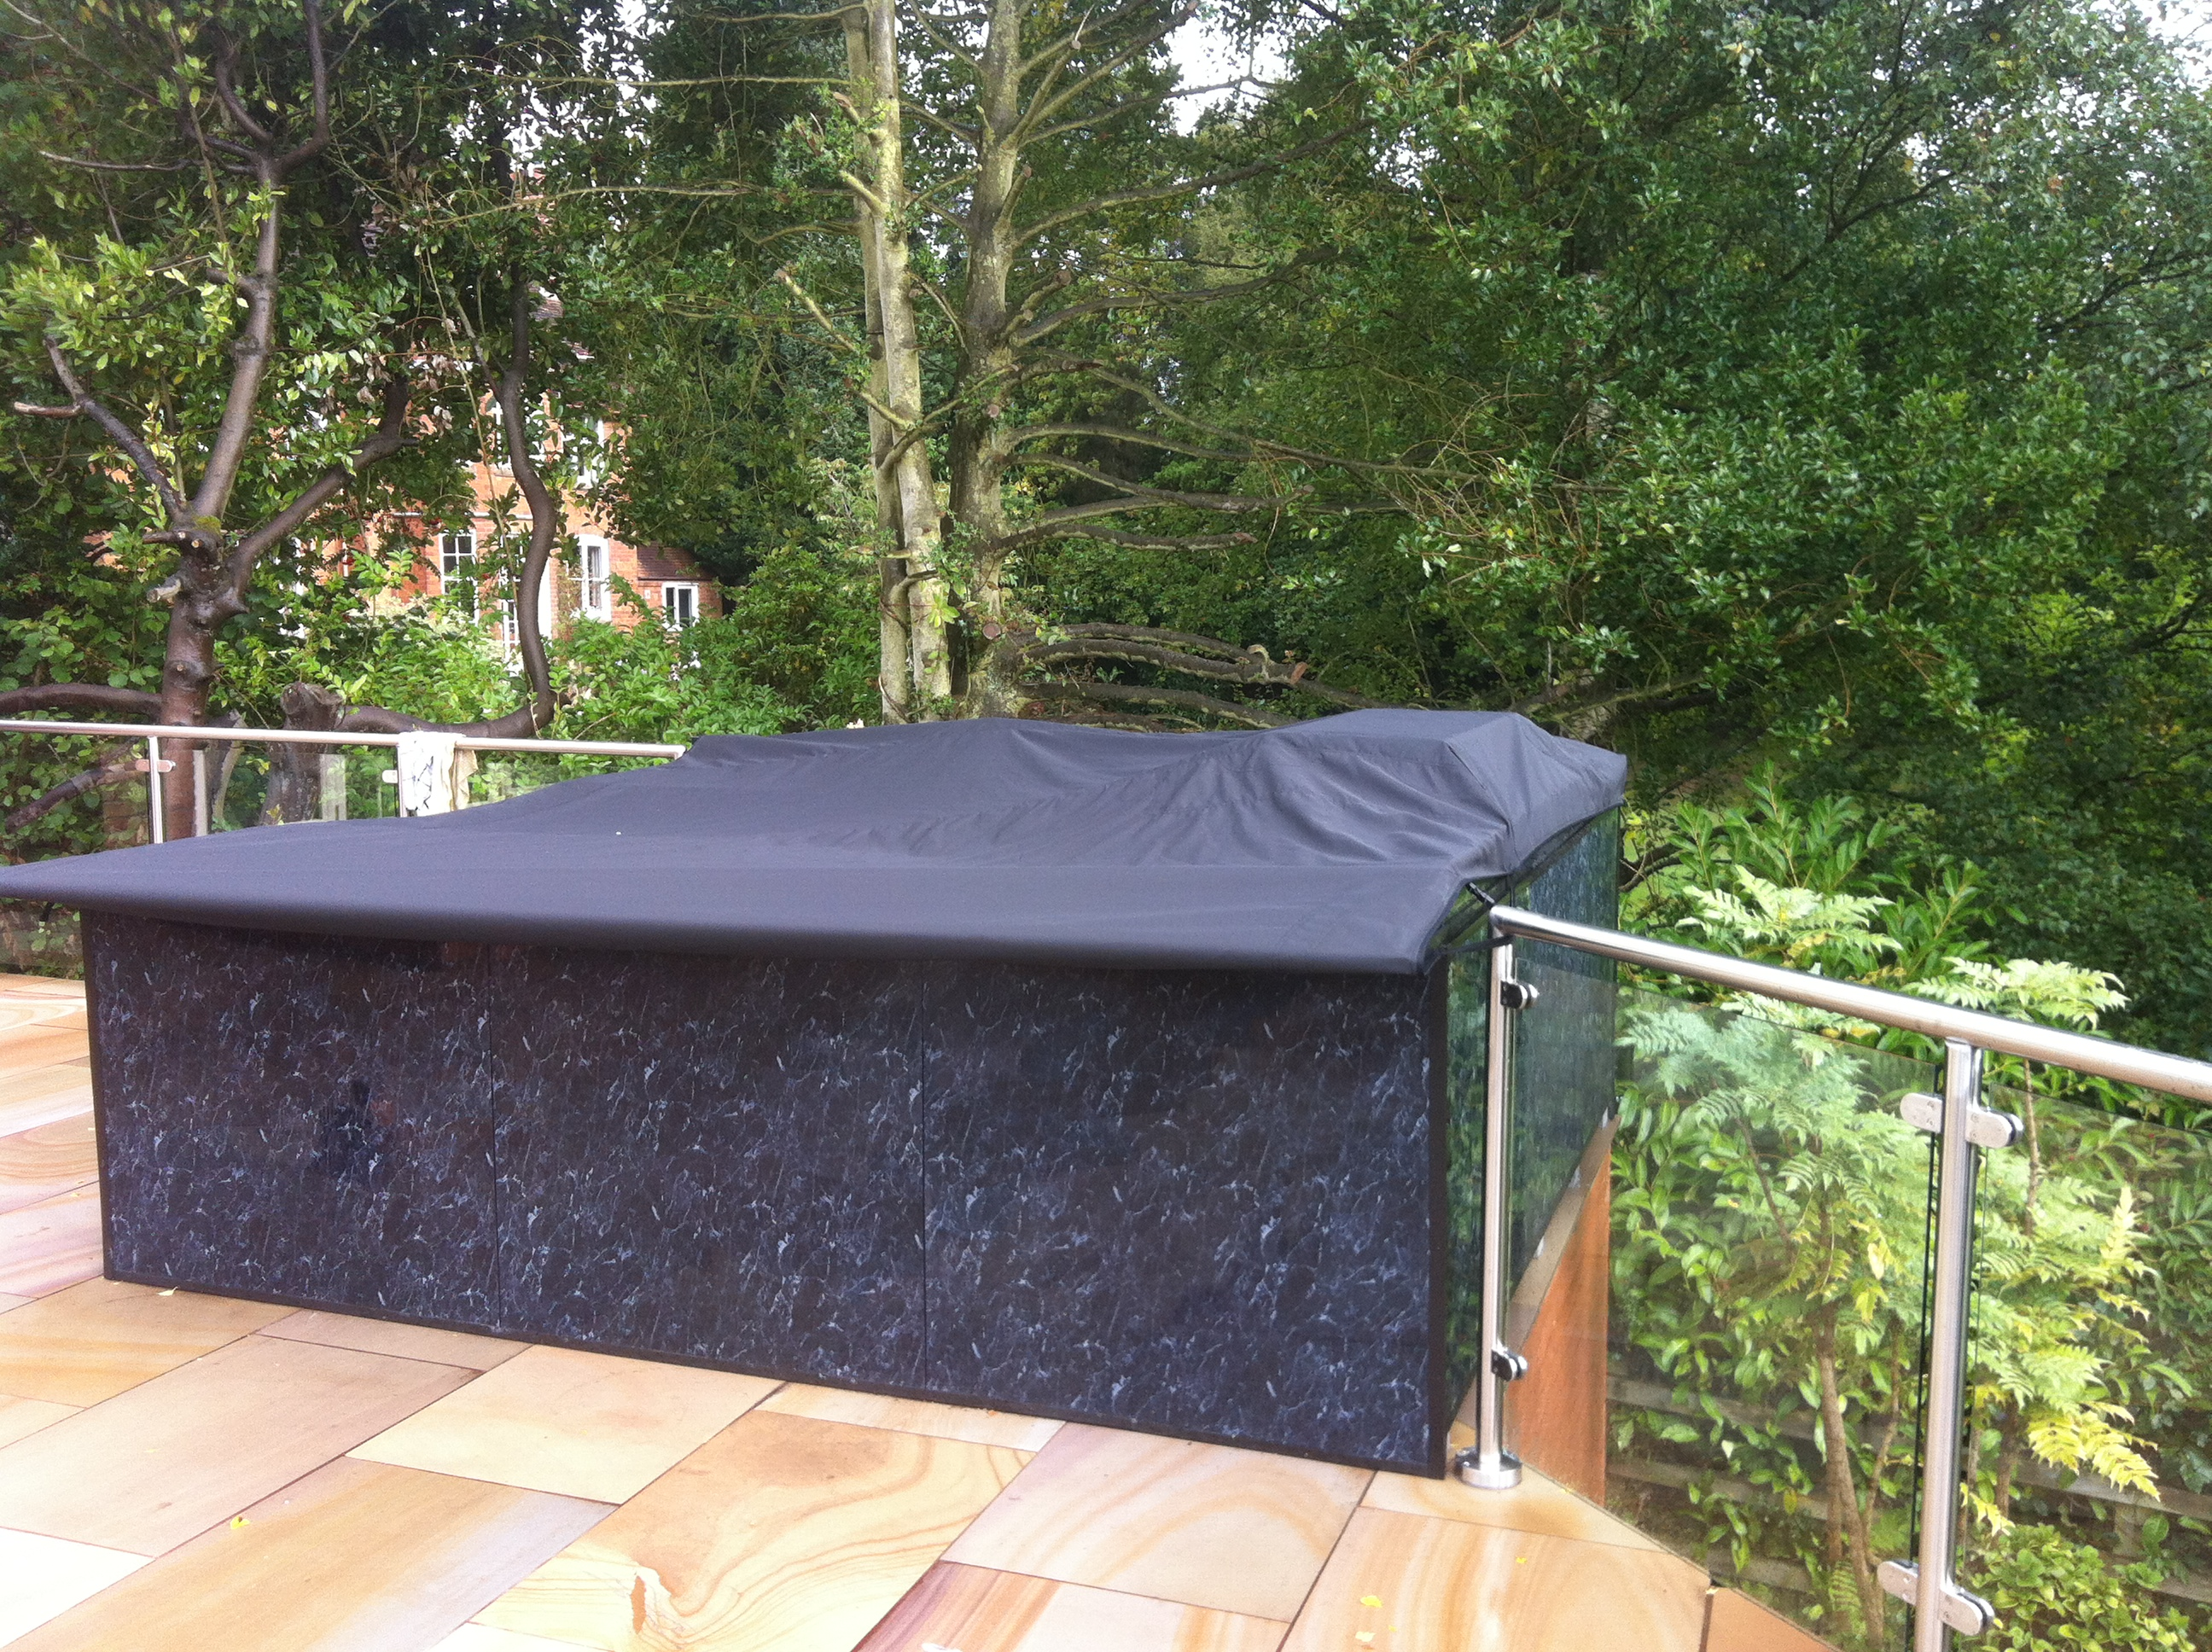 Weatherproof covers for your outdoor furniture